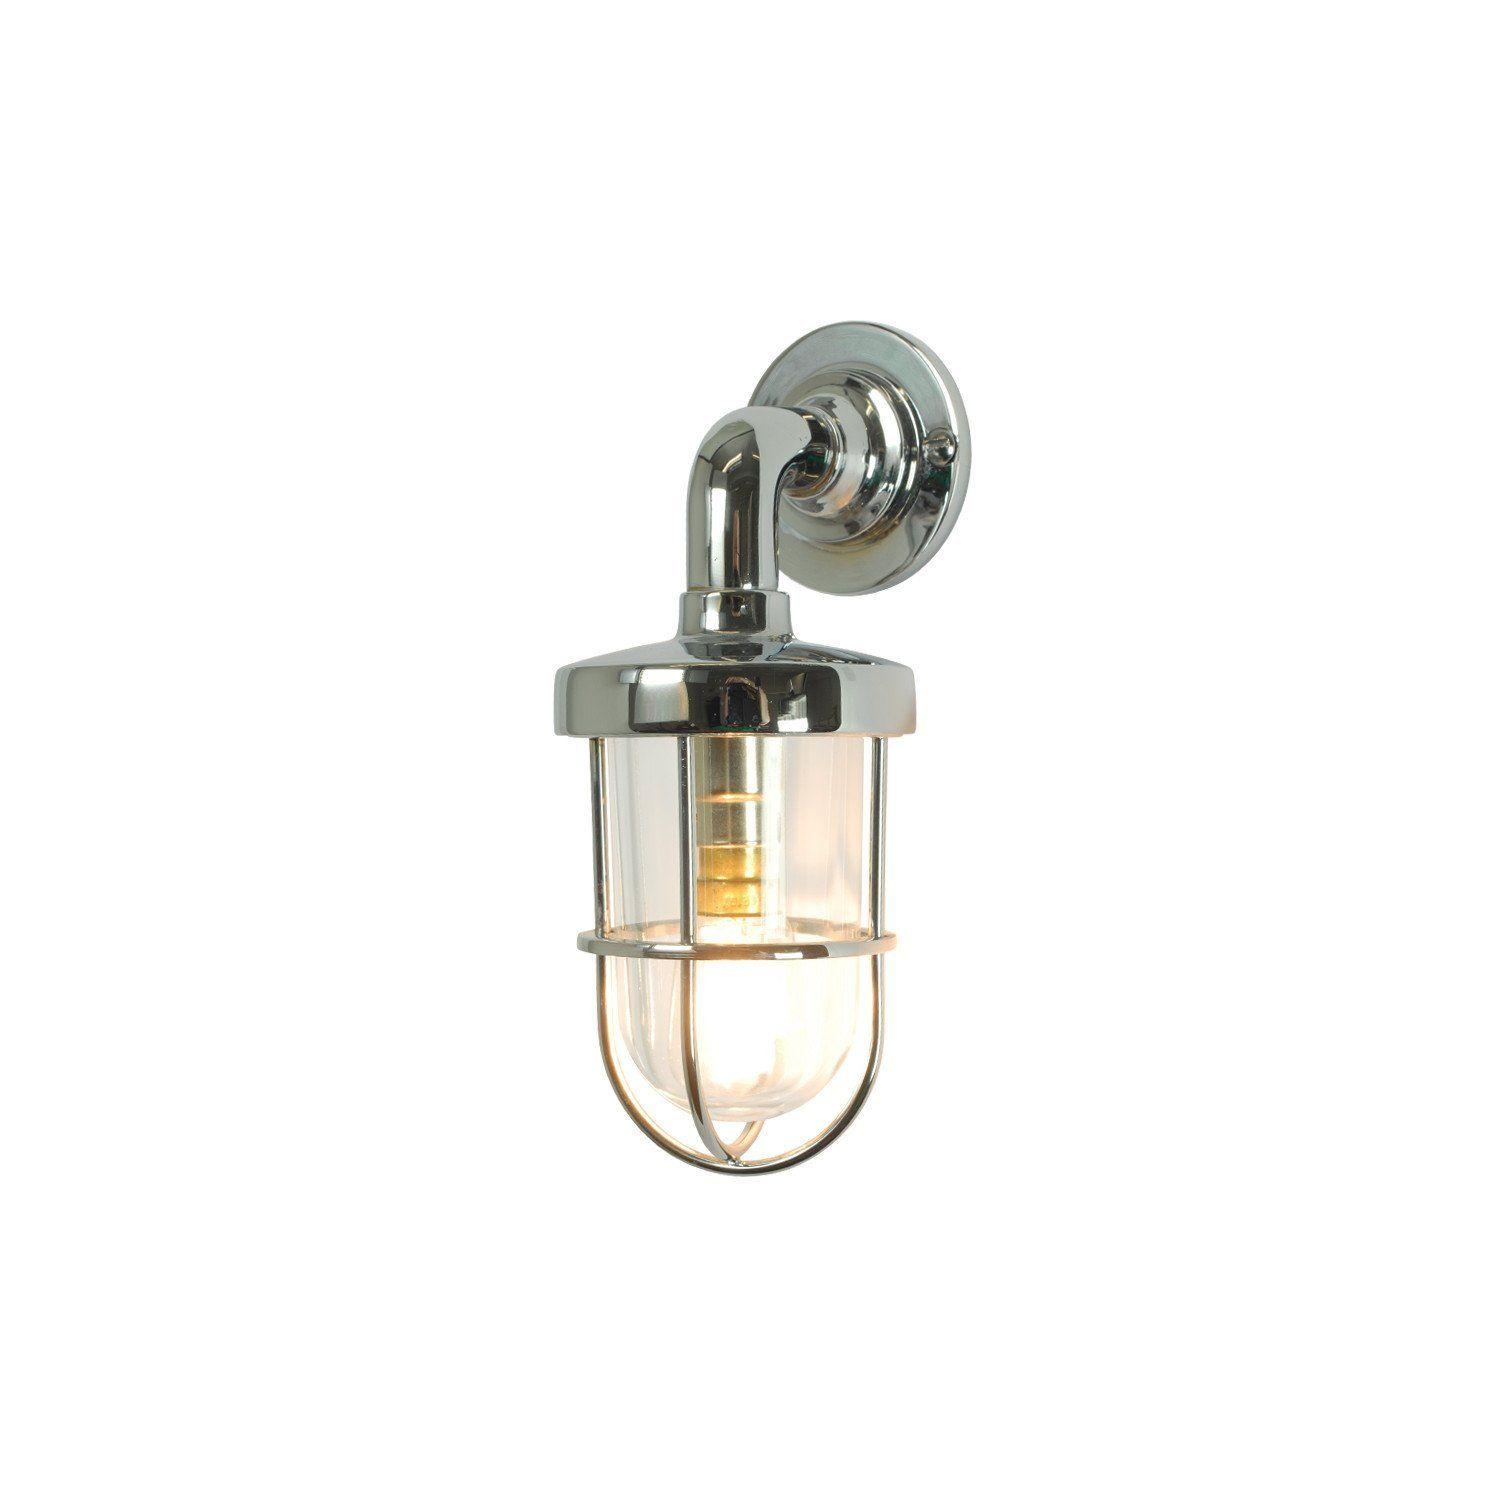 Original BTC Weatherproof Ship's Well Glass Wall Light - Mini